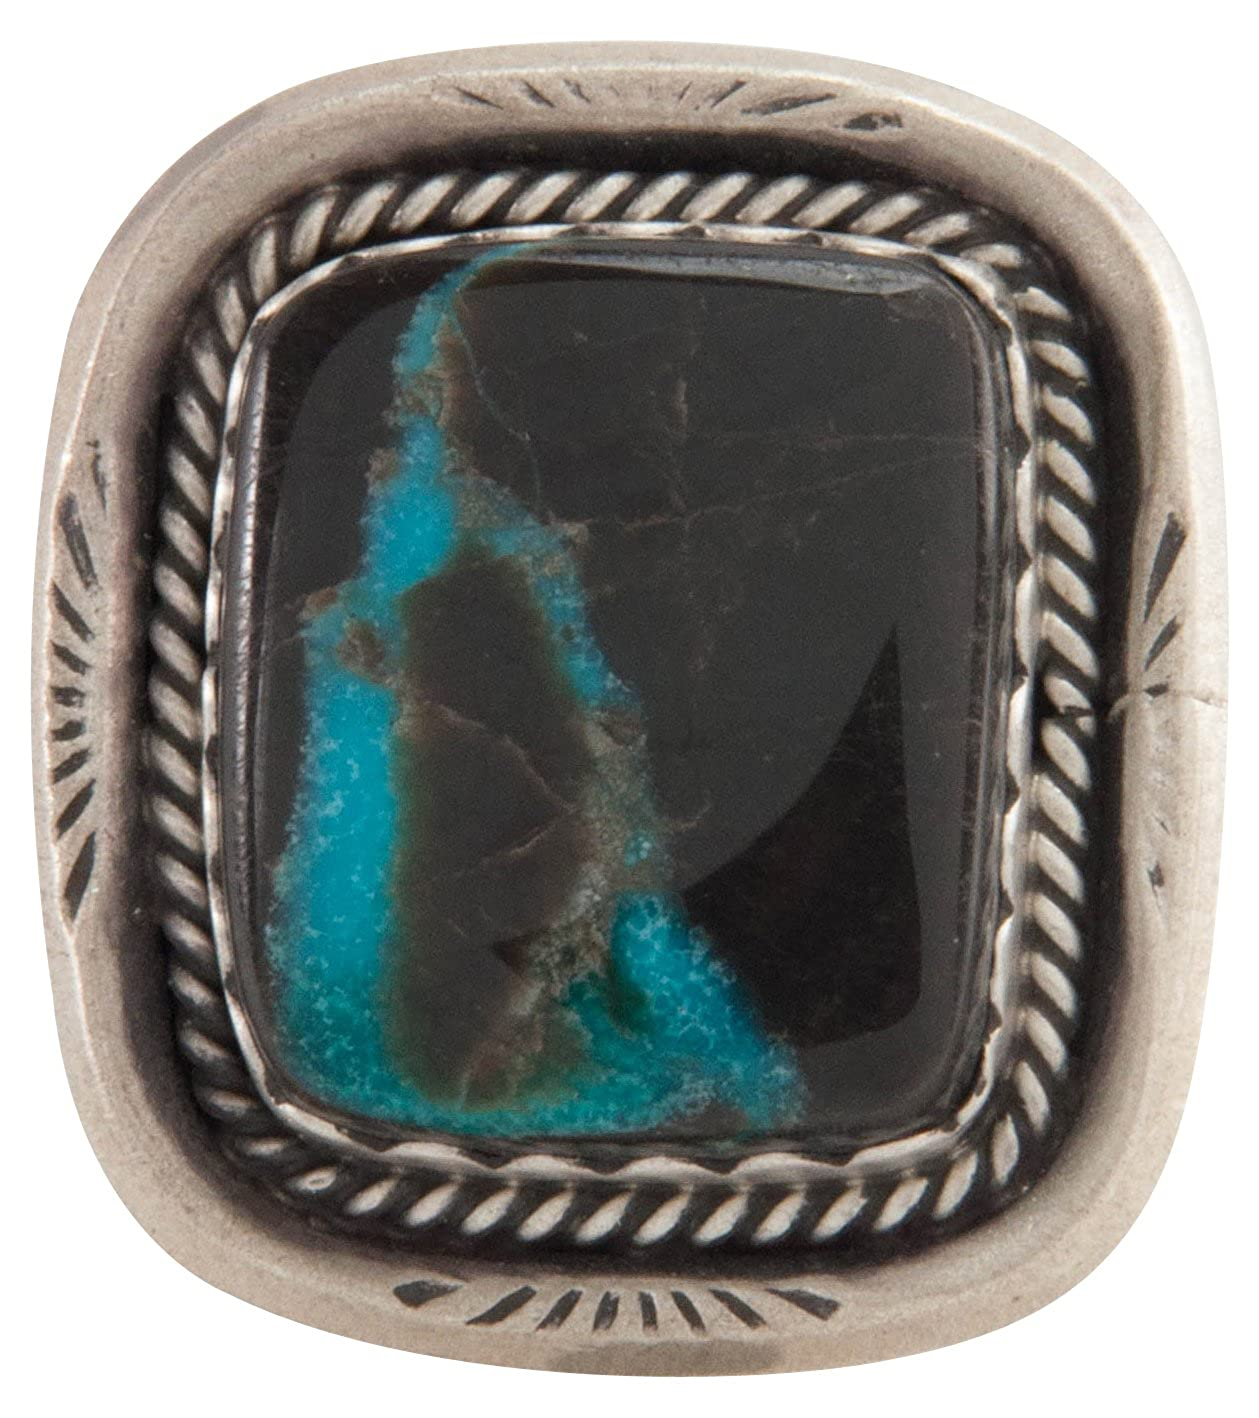 b63367bcb1d9 Amazon.com  Arthwick Store Navajo Native American Indian Mountain Turquoise  Ring Size 7 1 4  Jewelry